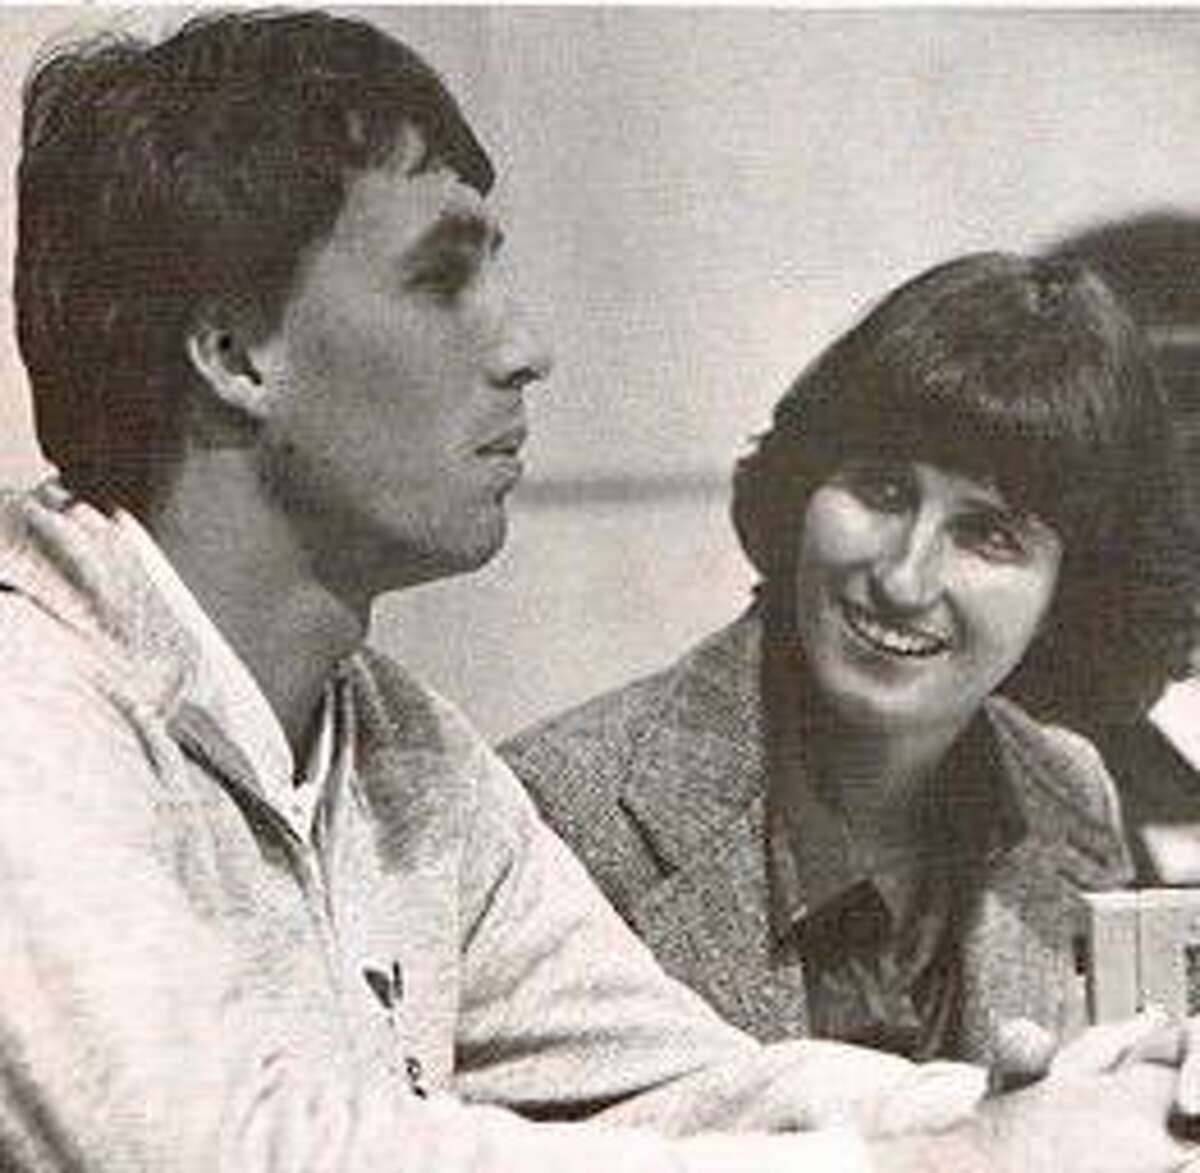 Ginny Apple of the Hartford Courant, interviewing Ivan Lendl in 1982